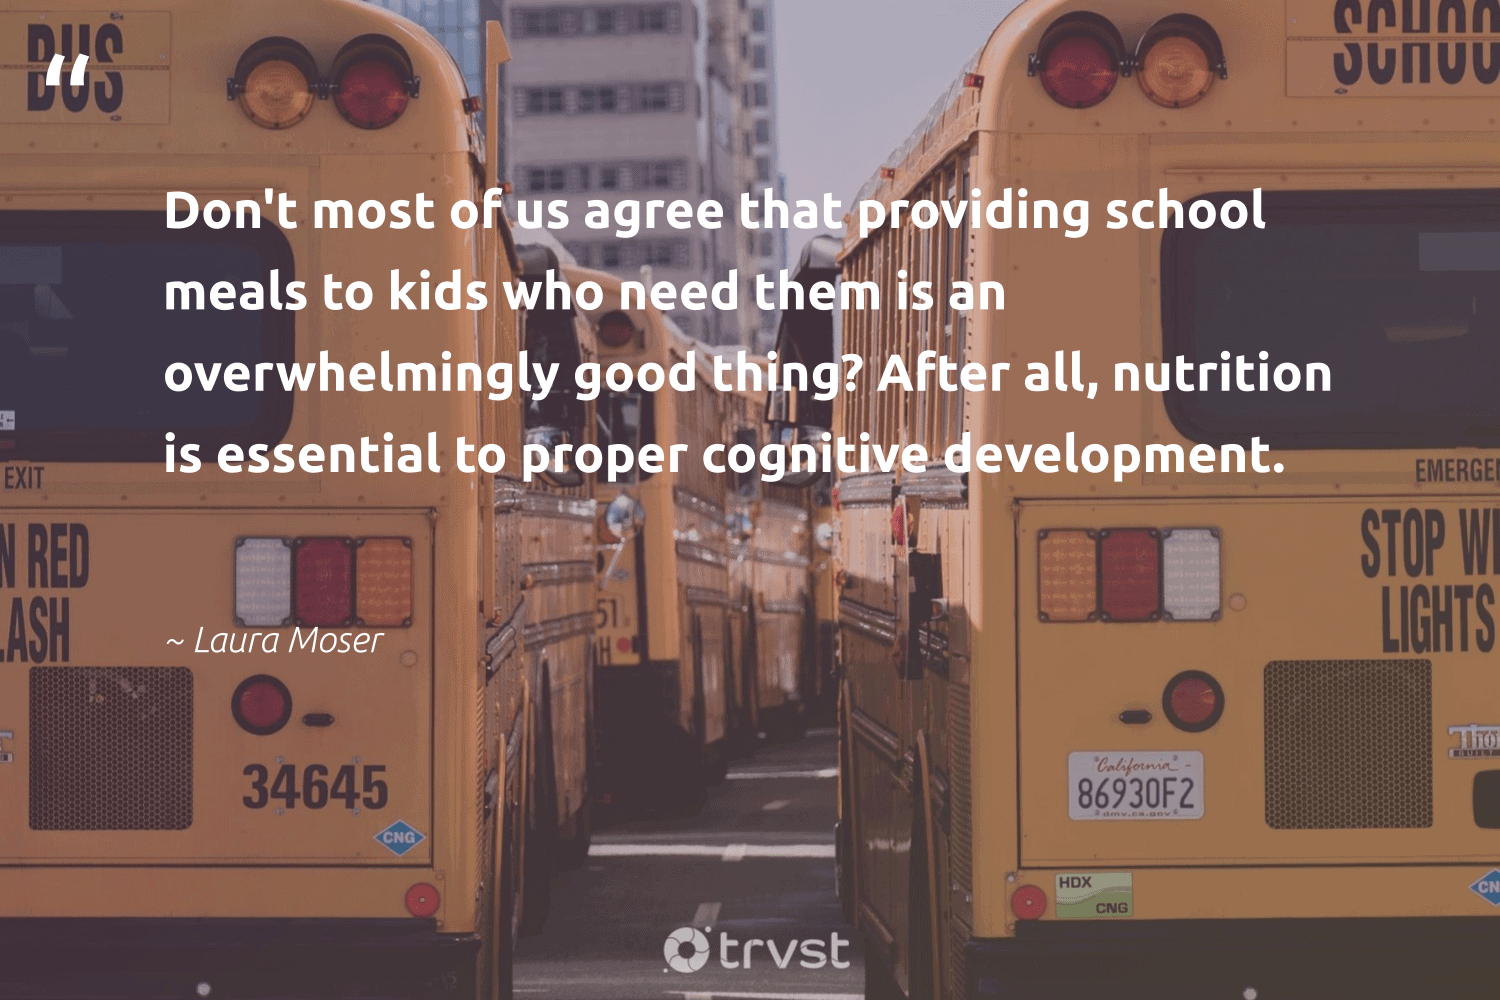 """""""Don't most of us agree that providing school meals to kids who need them is an overwhelmingly good thing? After all, nutrition is essential to proper cognitive development.""""  - Laura Moser #trvst #quotes #eatclean #nutrition #development #healthyeating #begreat #nevergiveup #bethechange #healthyfood #mindset #changemakers"""